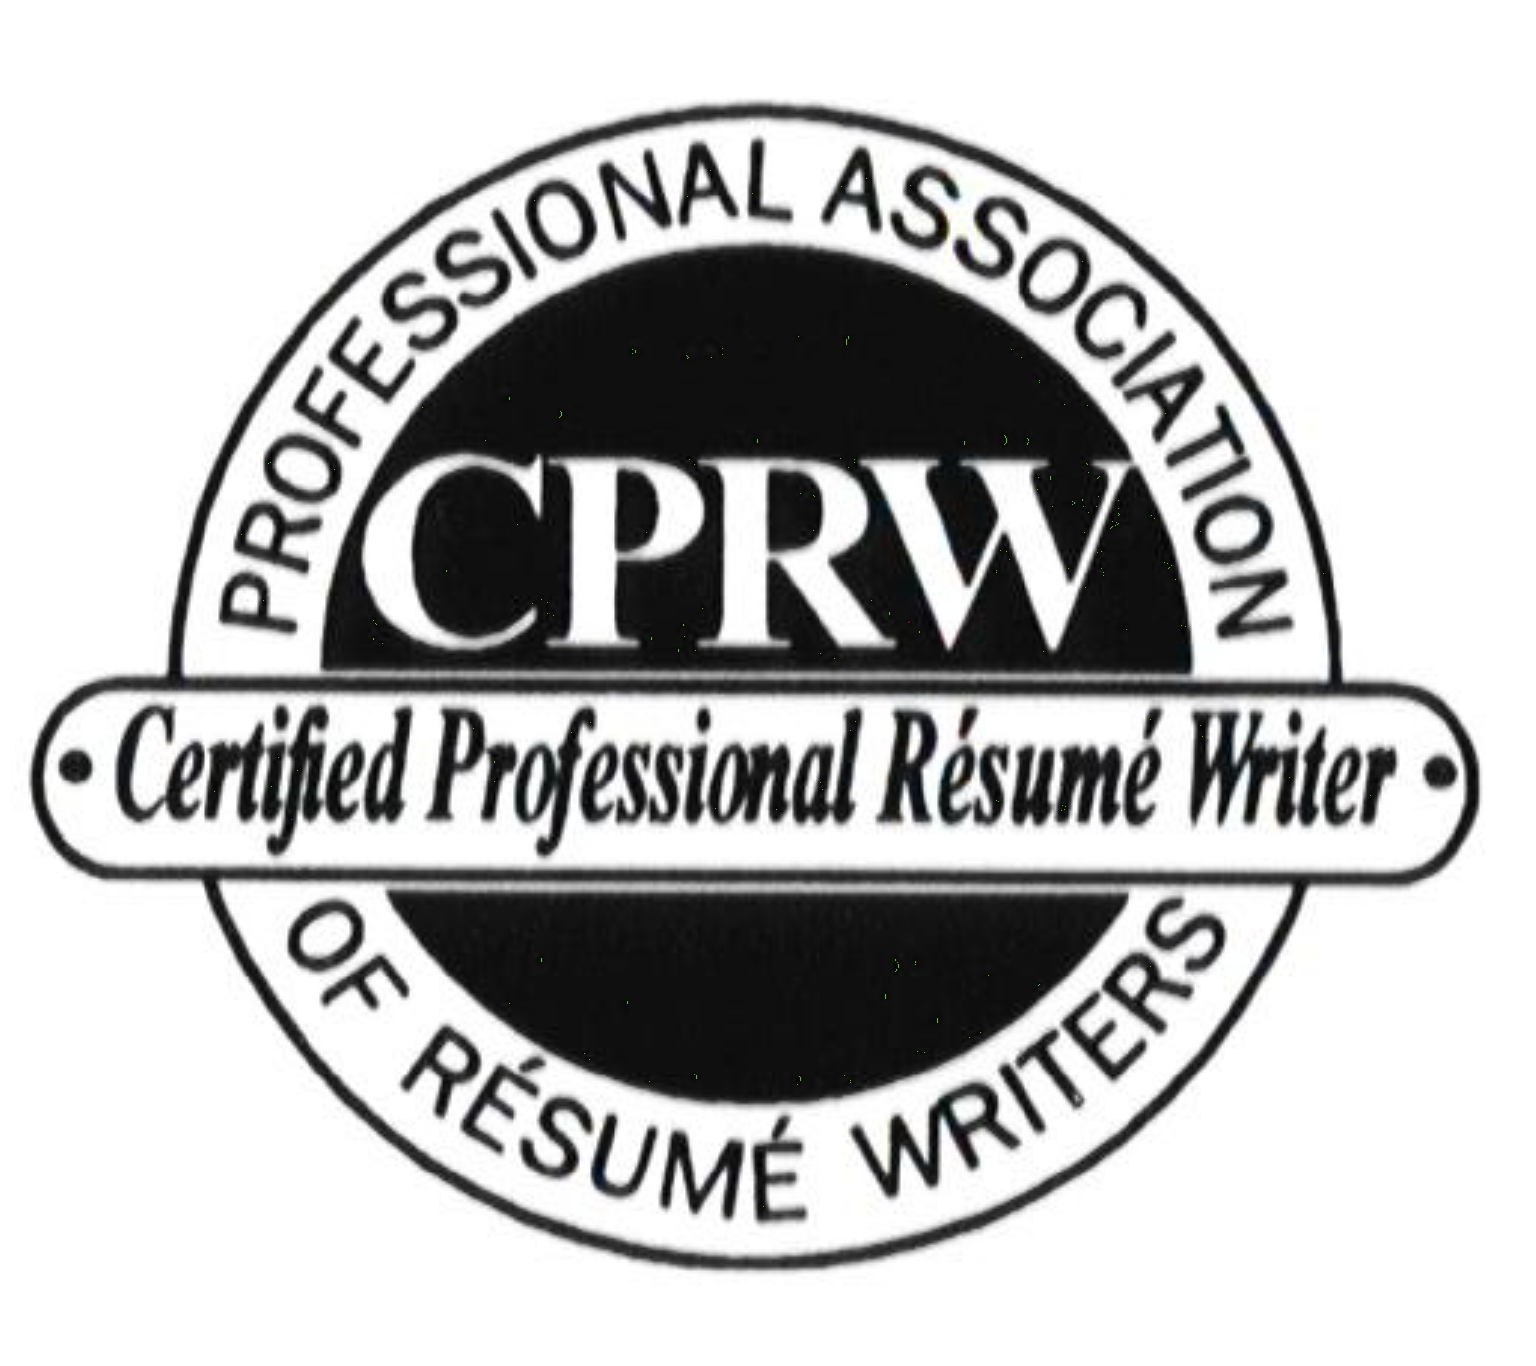 should i hire a professional resume writer cprw certified